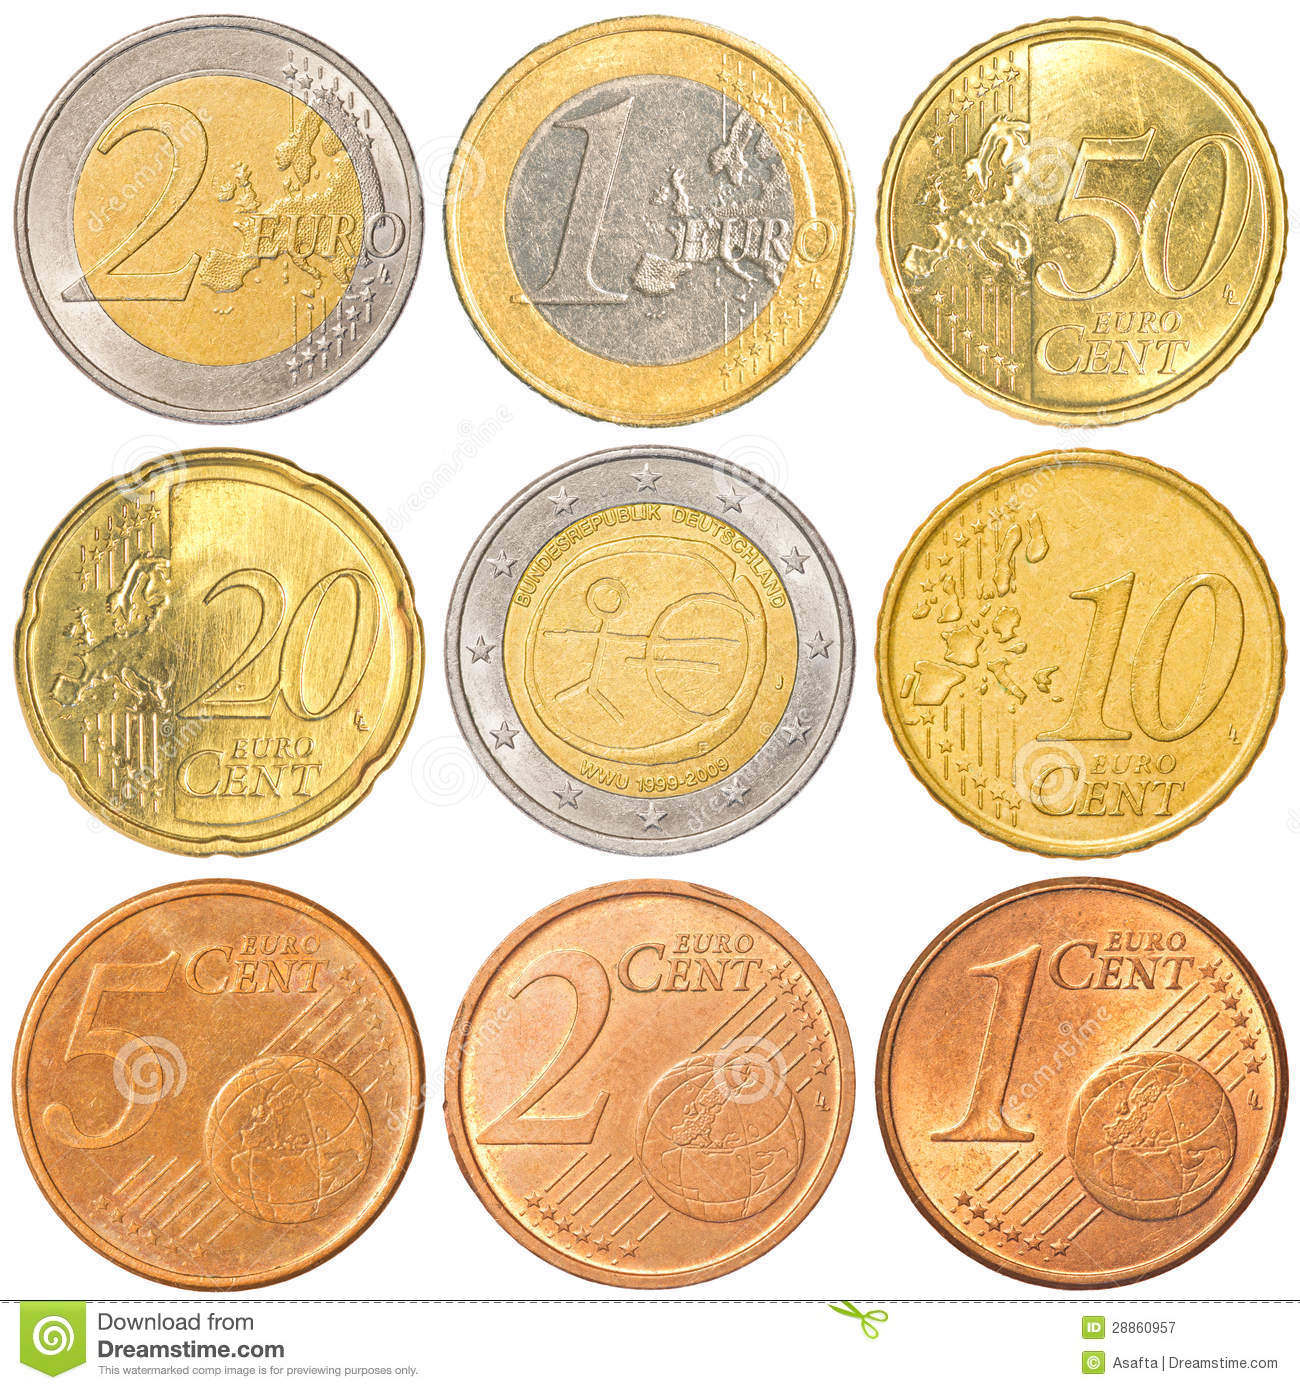 Euro collection de pi ces de monnaie image stock image 28860957 - Piece 2 euros la plus chere ...